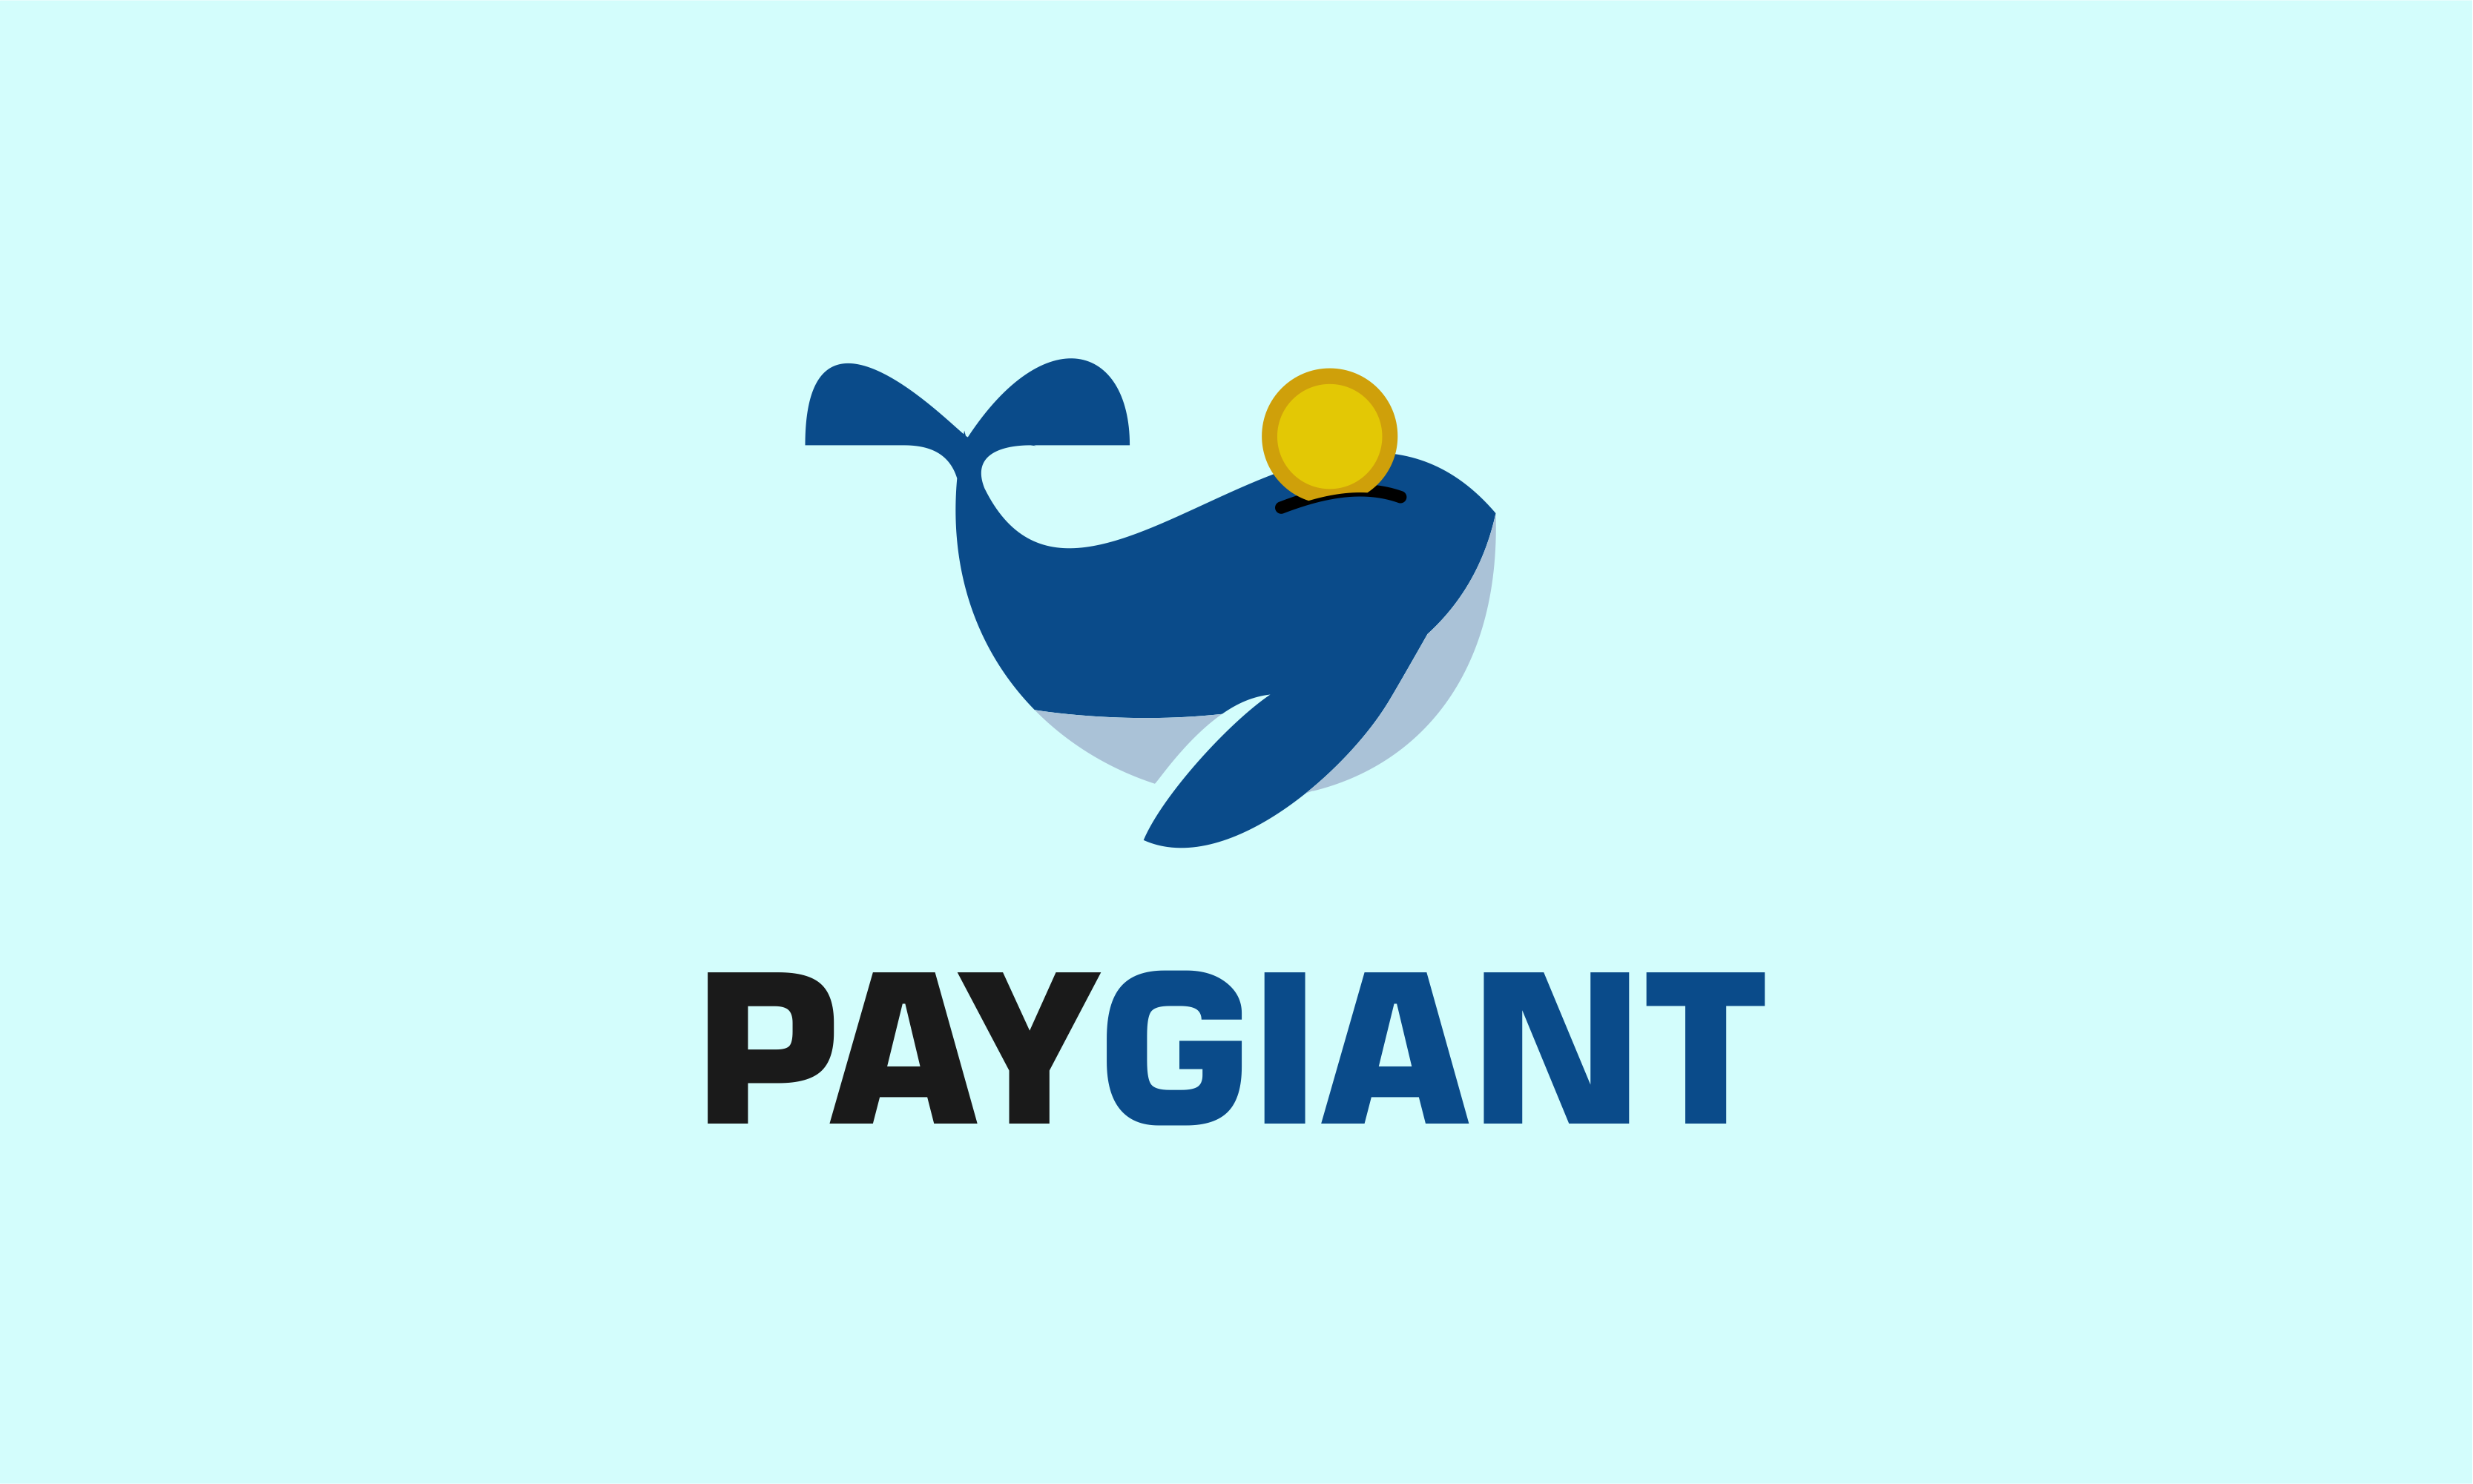 Paygiant - Banking brand name for sale